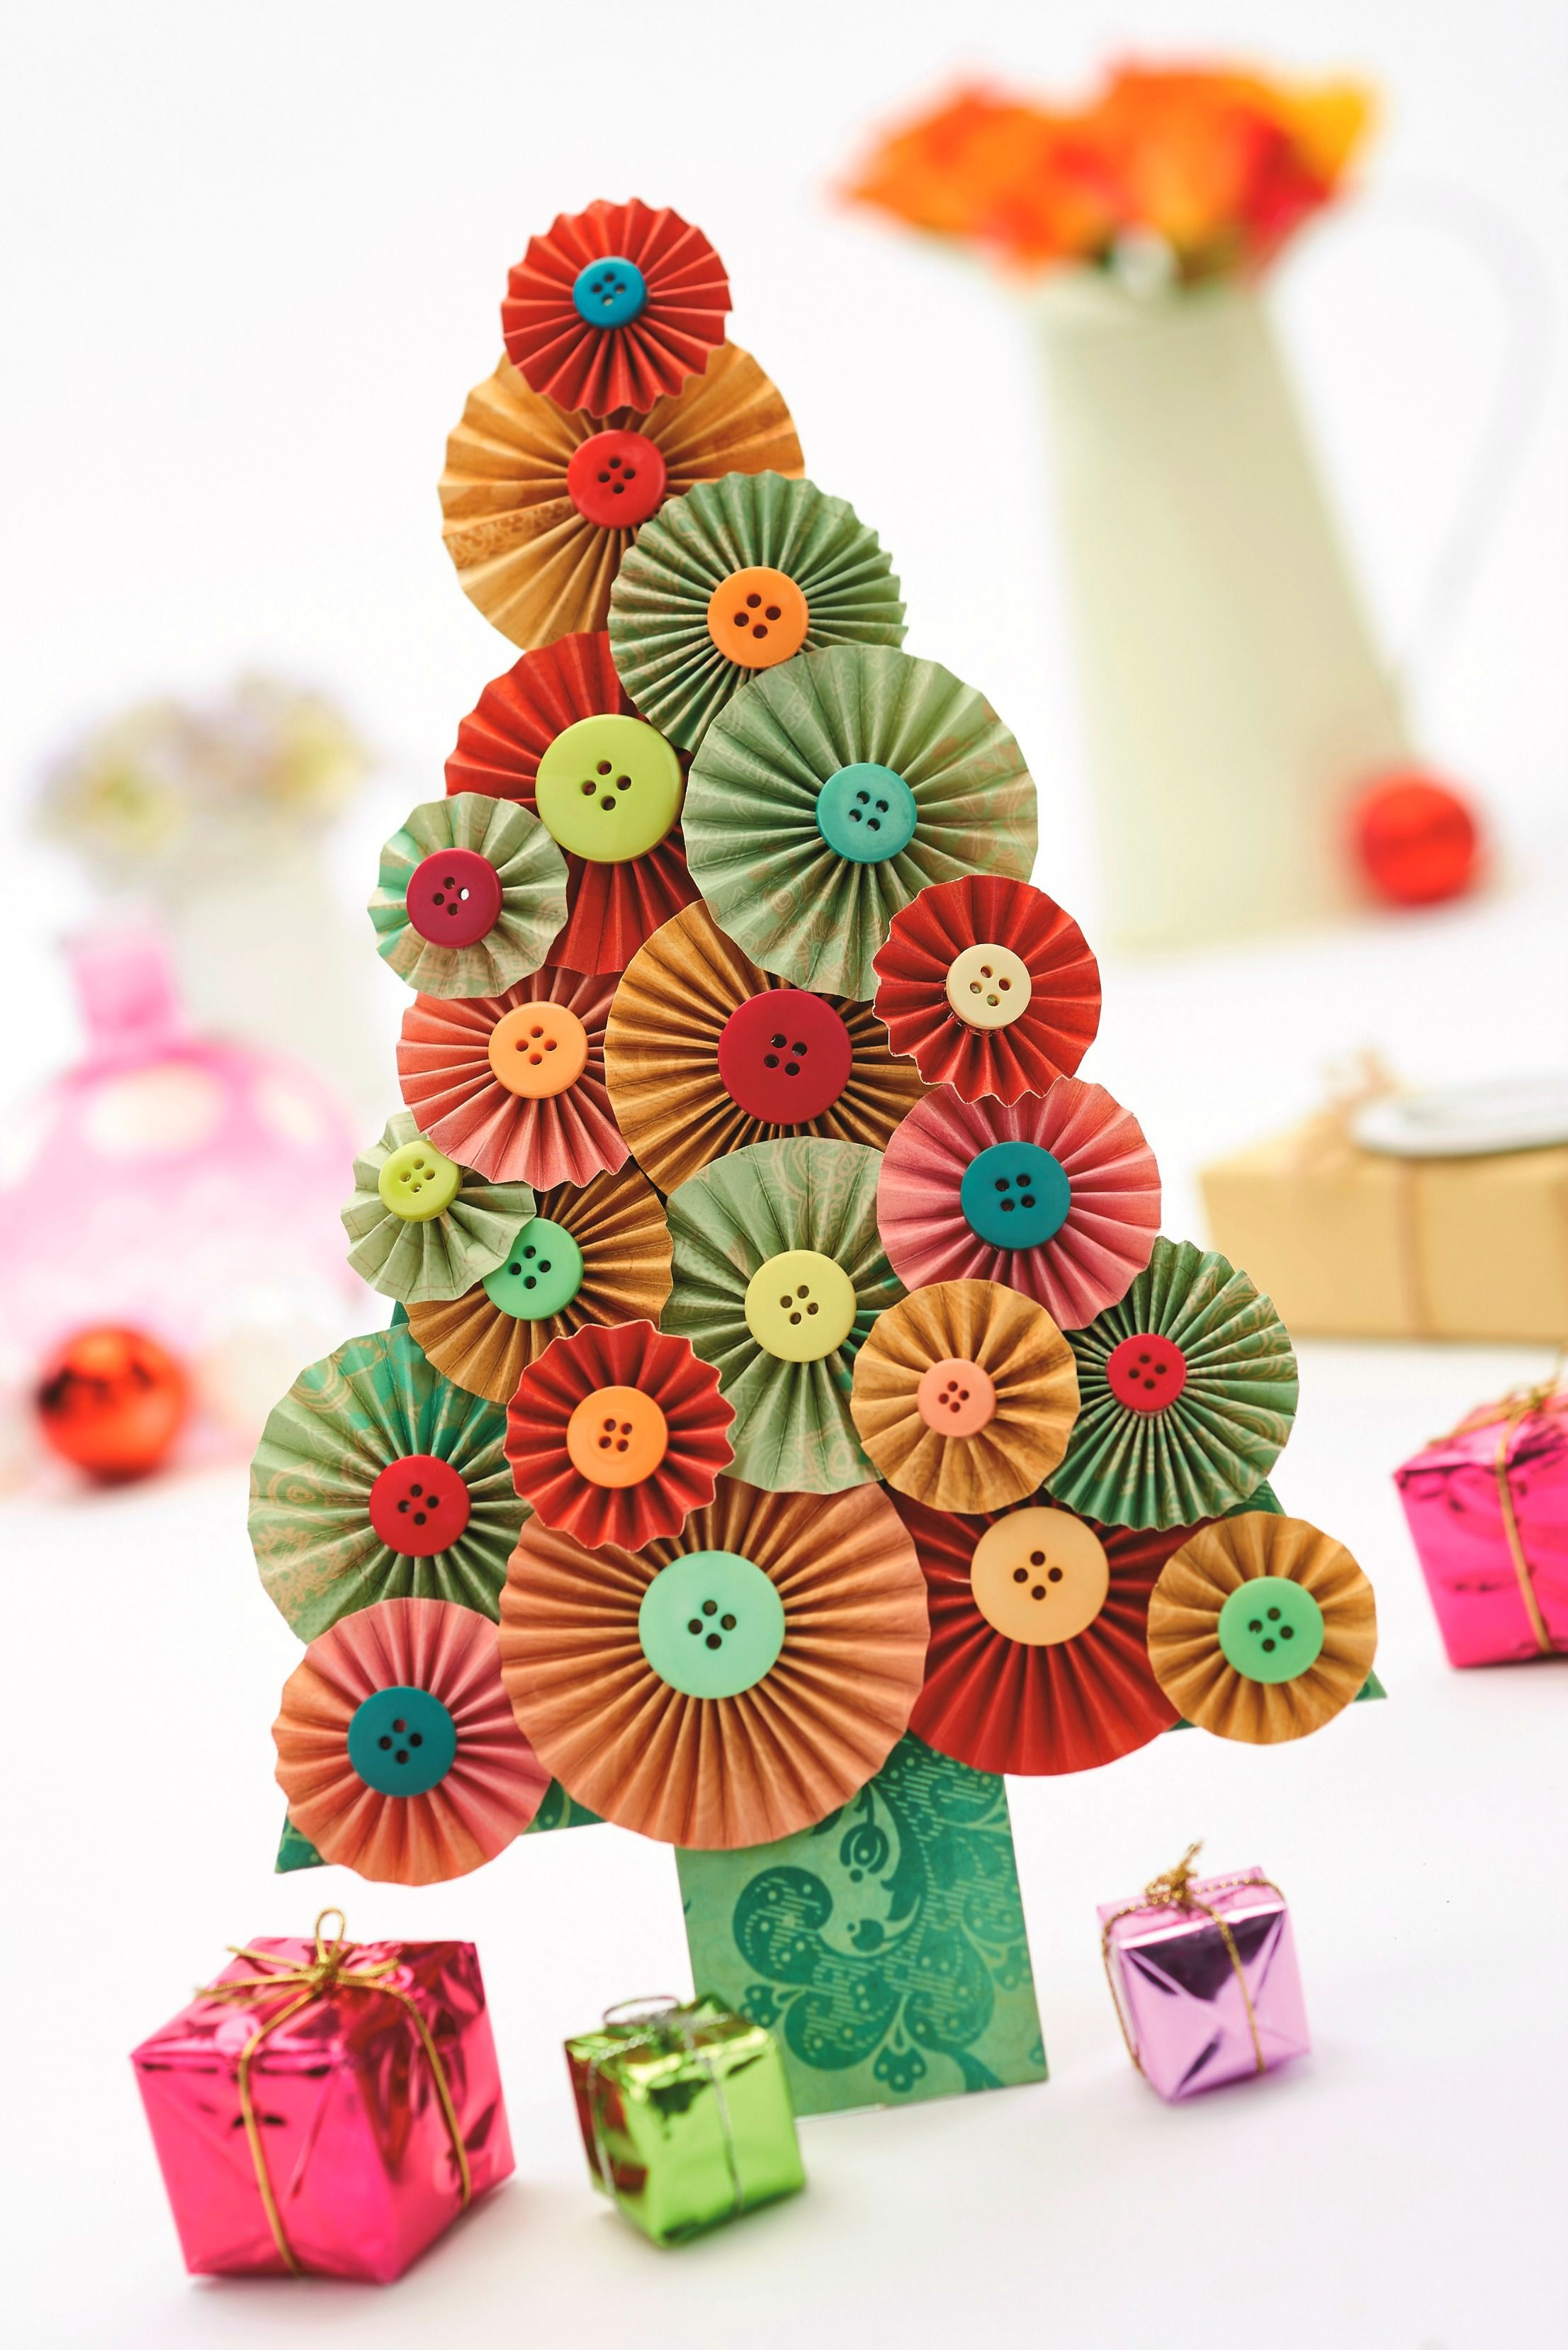 Make a Christmas tree out of paper! - PaperCrafter issue 88 (Photography: cliqq.co.uk)